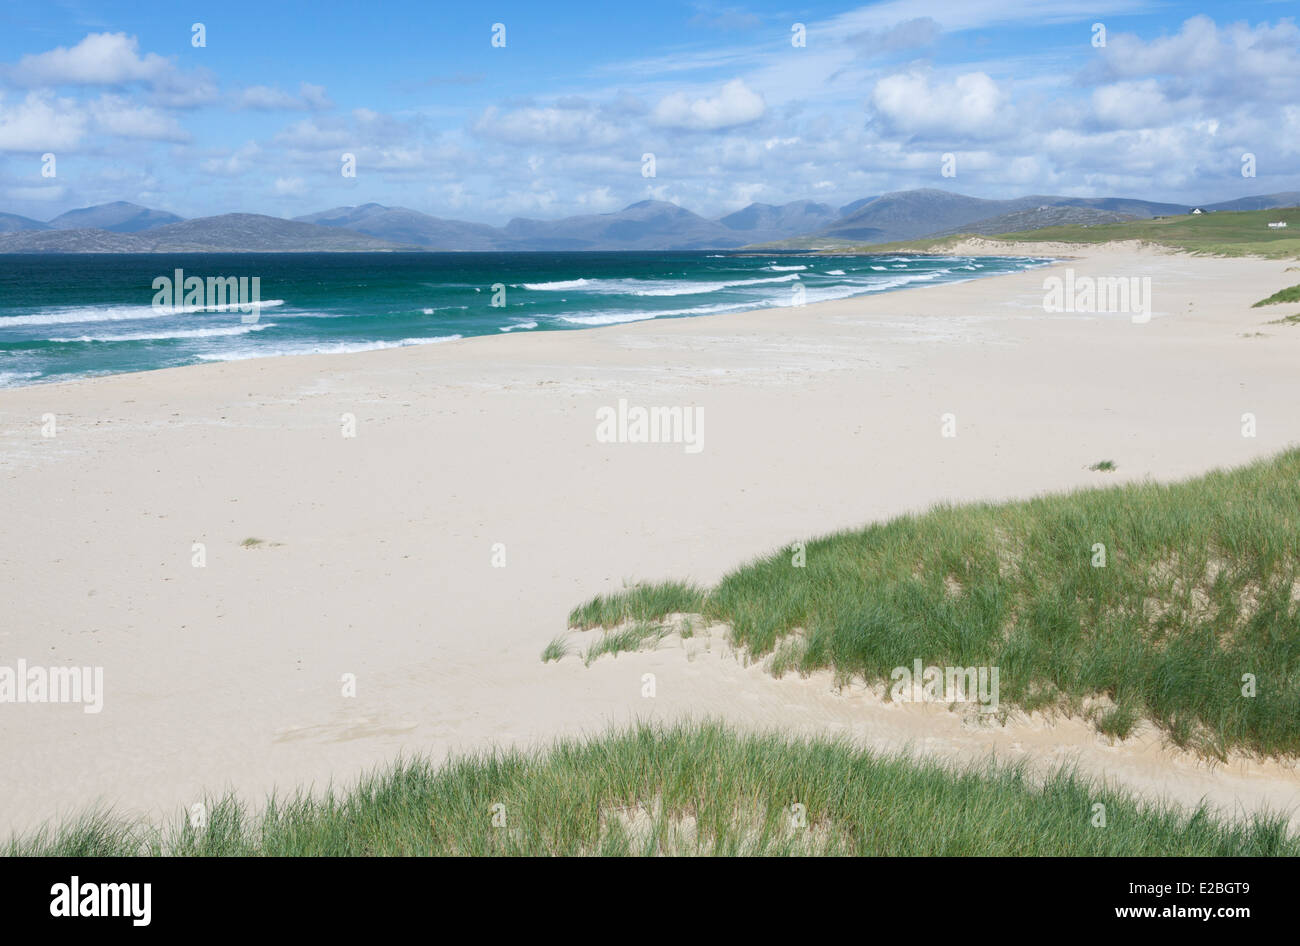 A view of Scarista beach, Isle of Harris, Outer Hebrides, Scotland - Stock Image